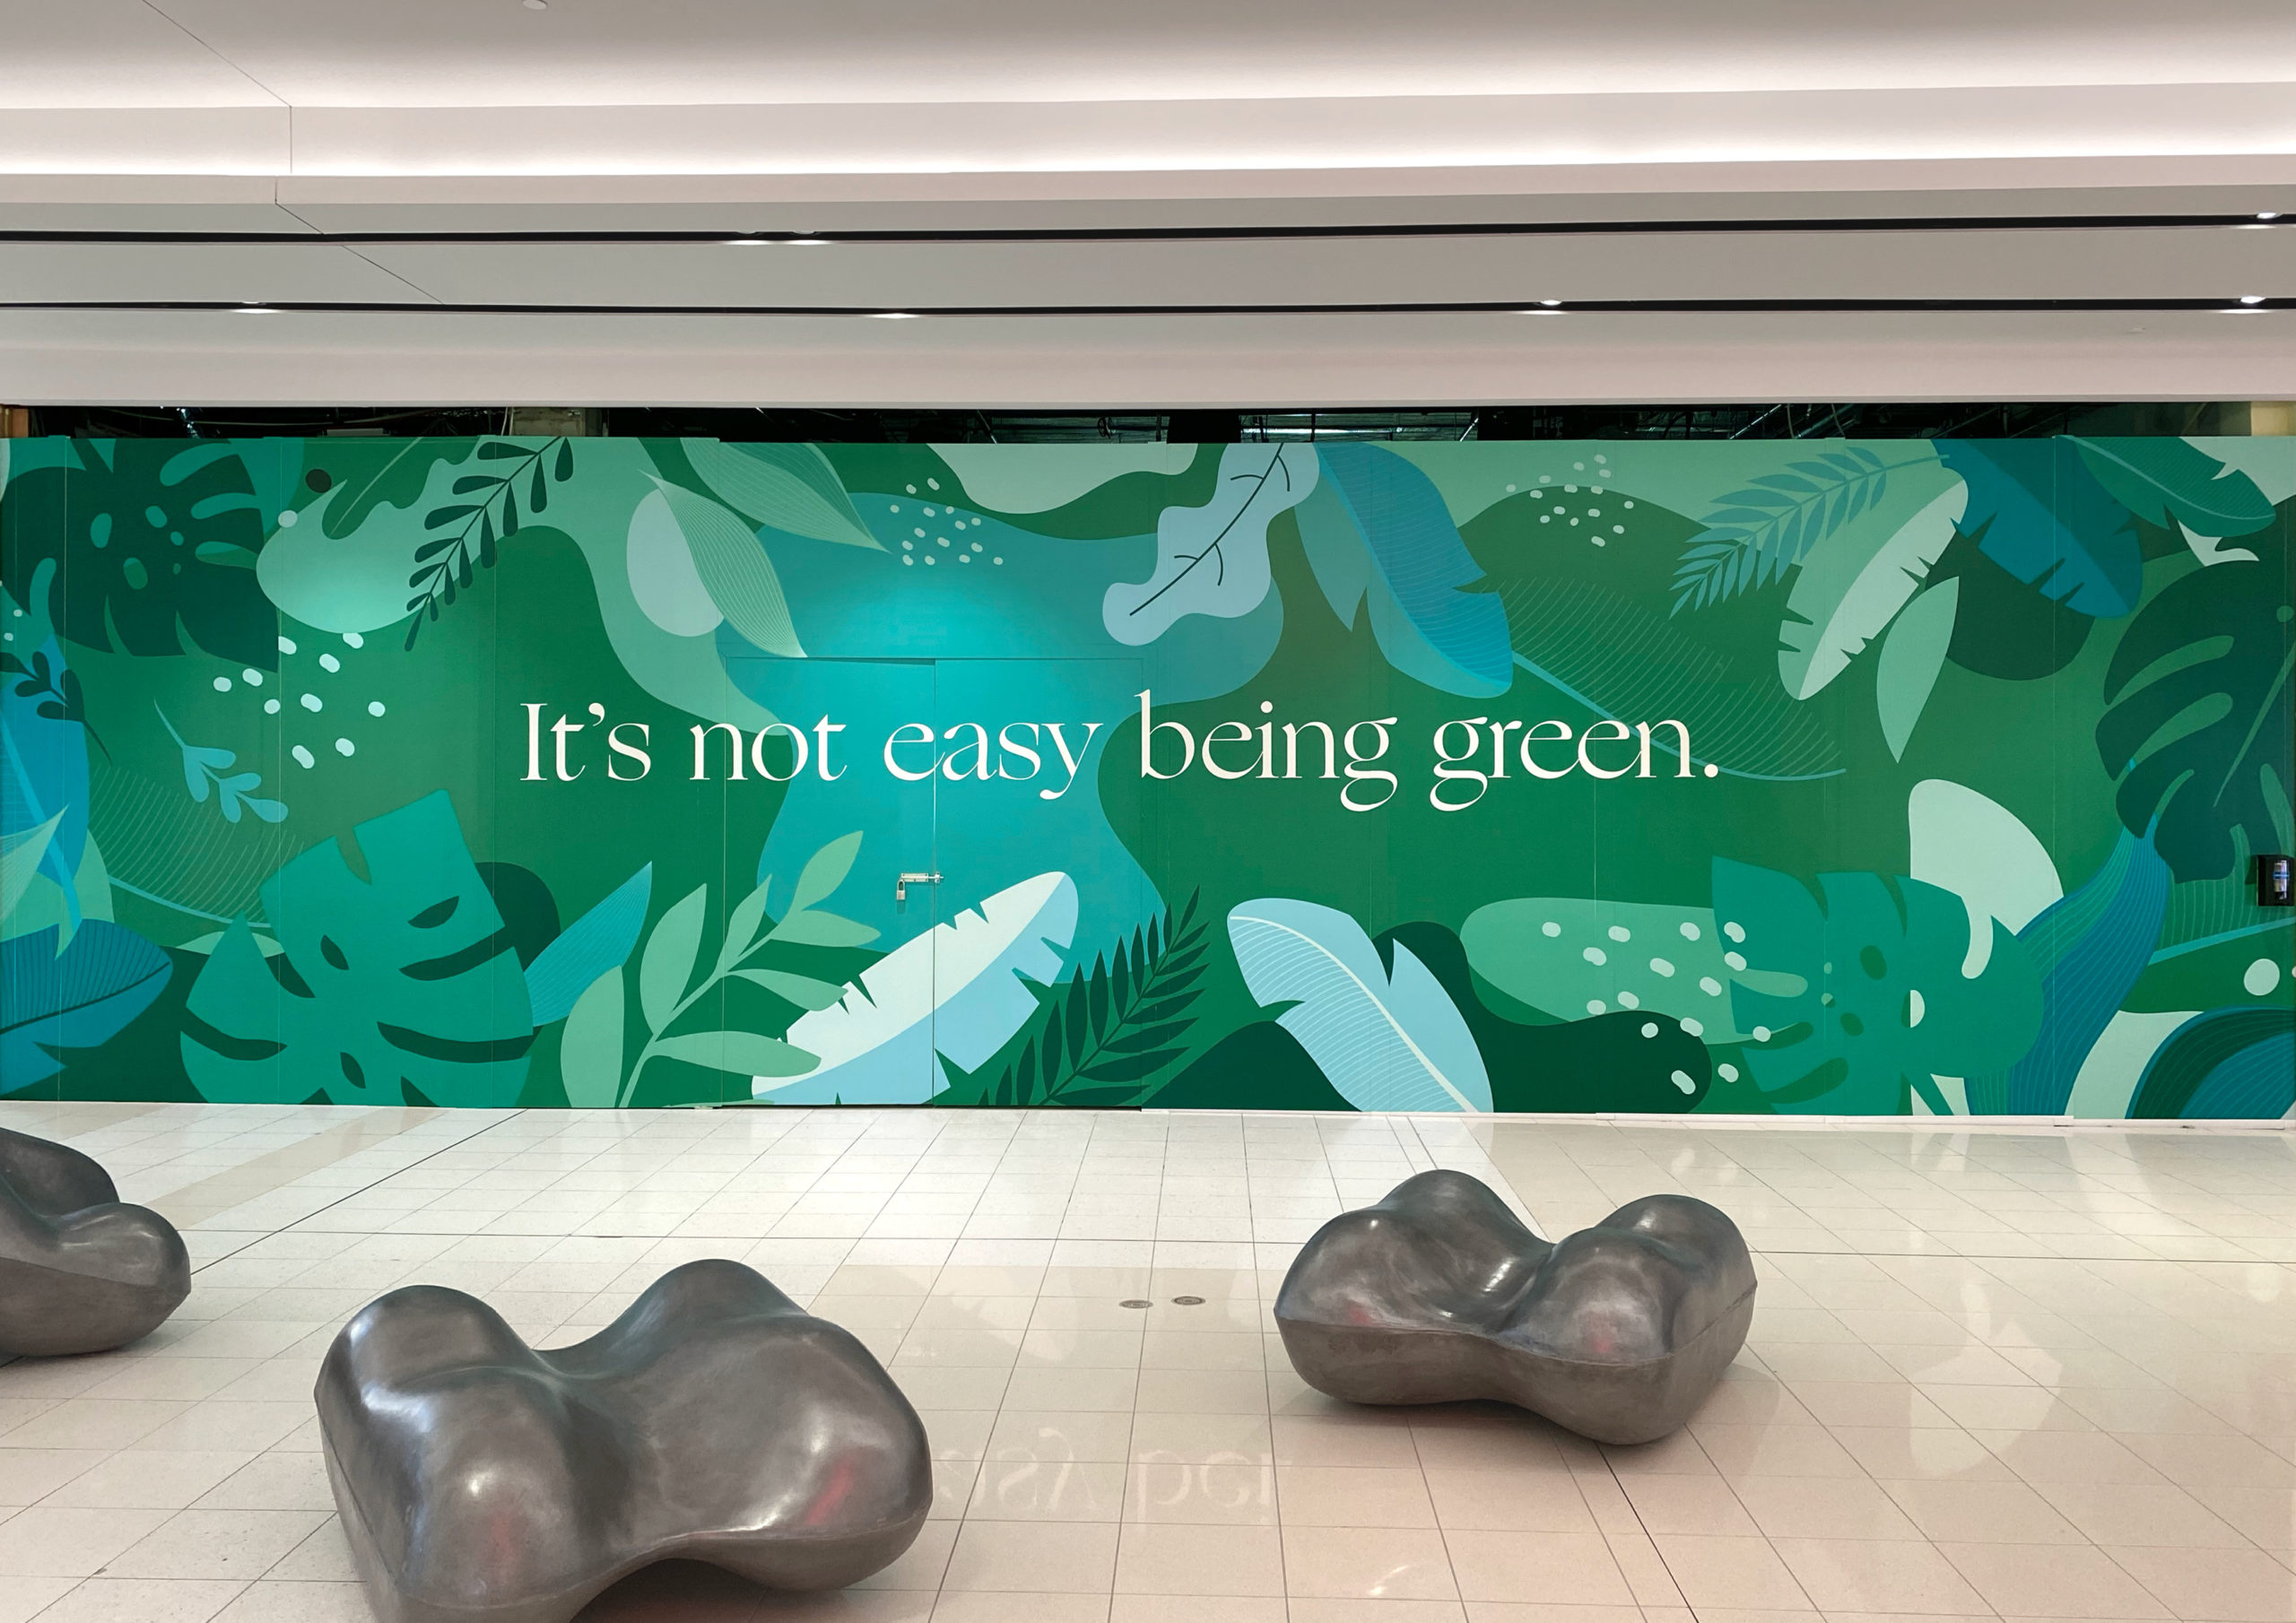 It's not easy being green message atop lush, green leafy background